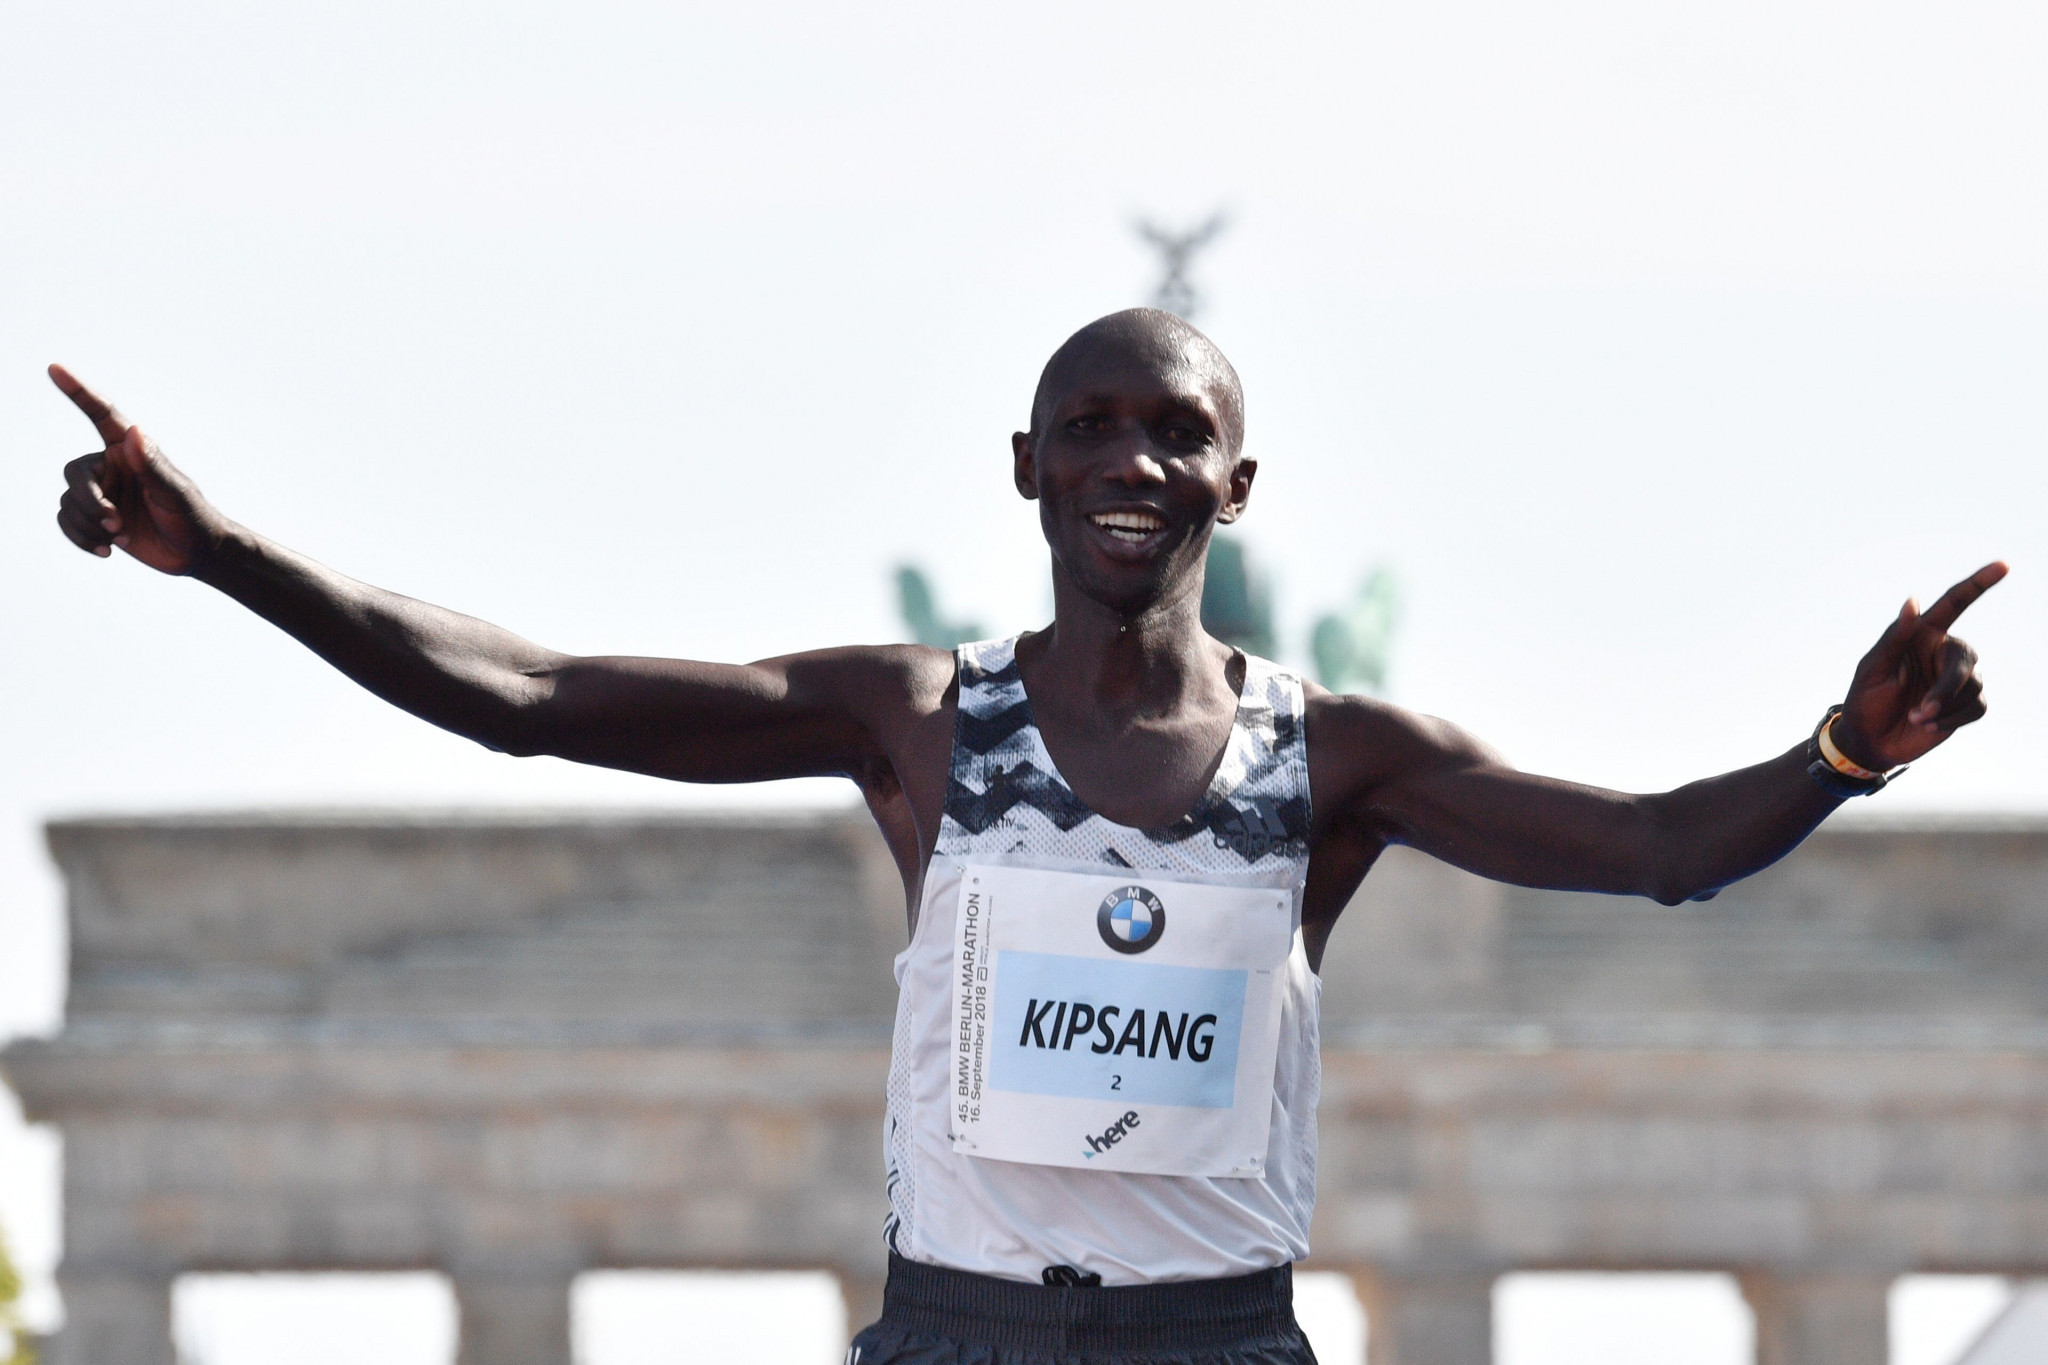 Former world marathon record holder suspended for breaking anti-doping rules